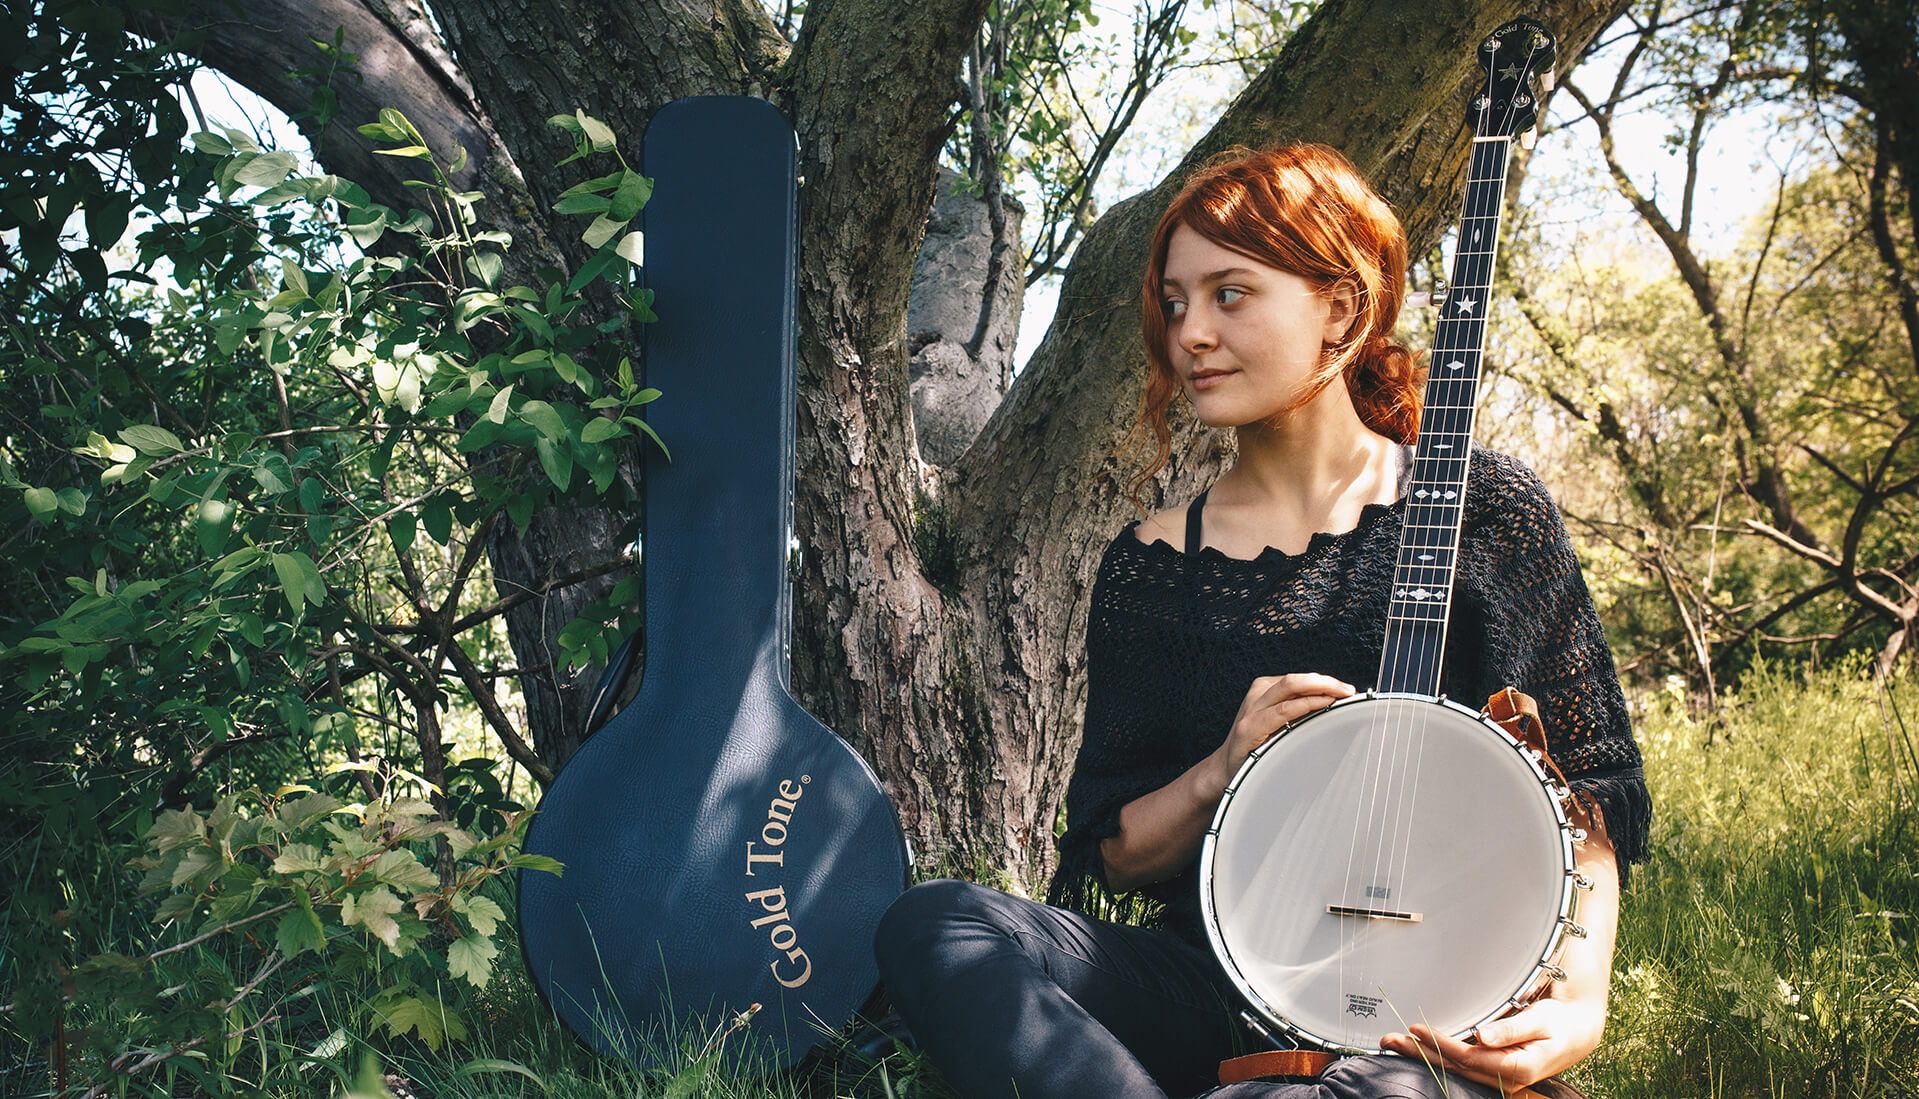 Libby DeCamp with her OT-800 banjo